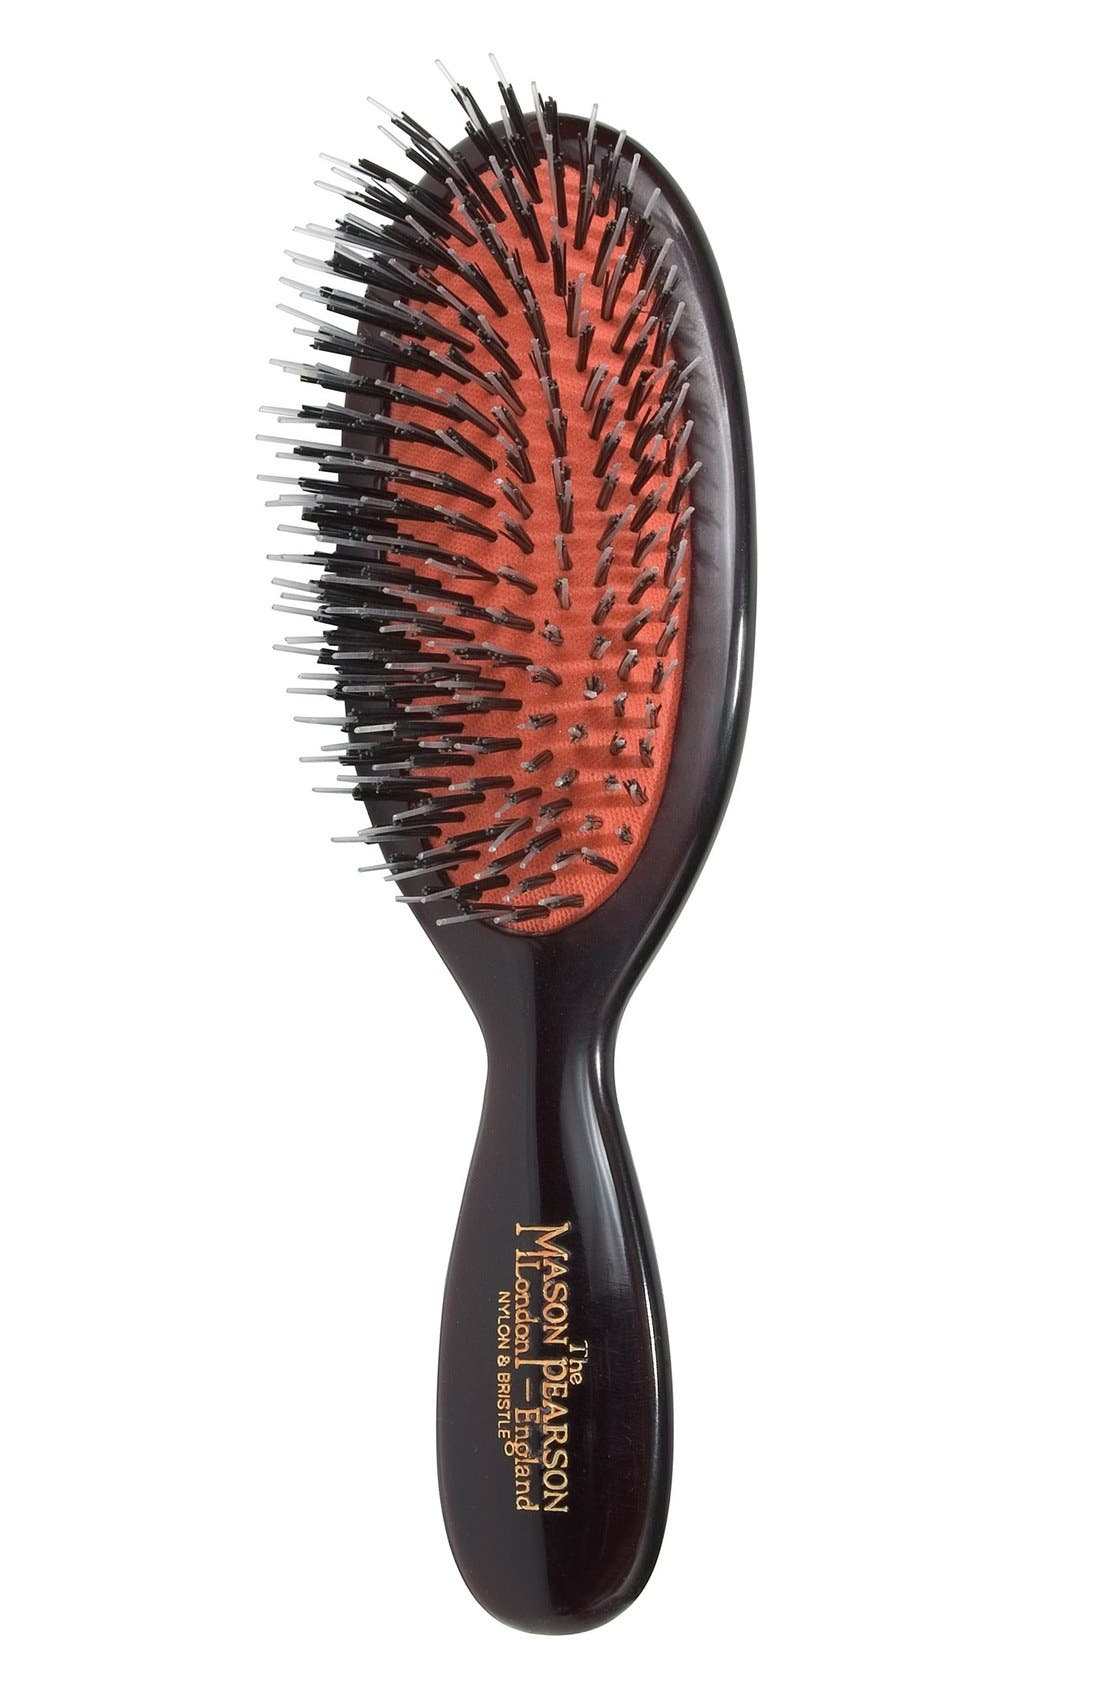 Main Image - Mason Pearson Popular Mixture Nylon & Boar Bristle Brush for Long Coarse to Normal Hair